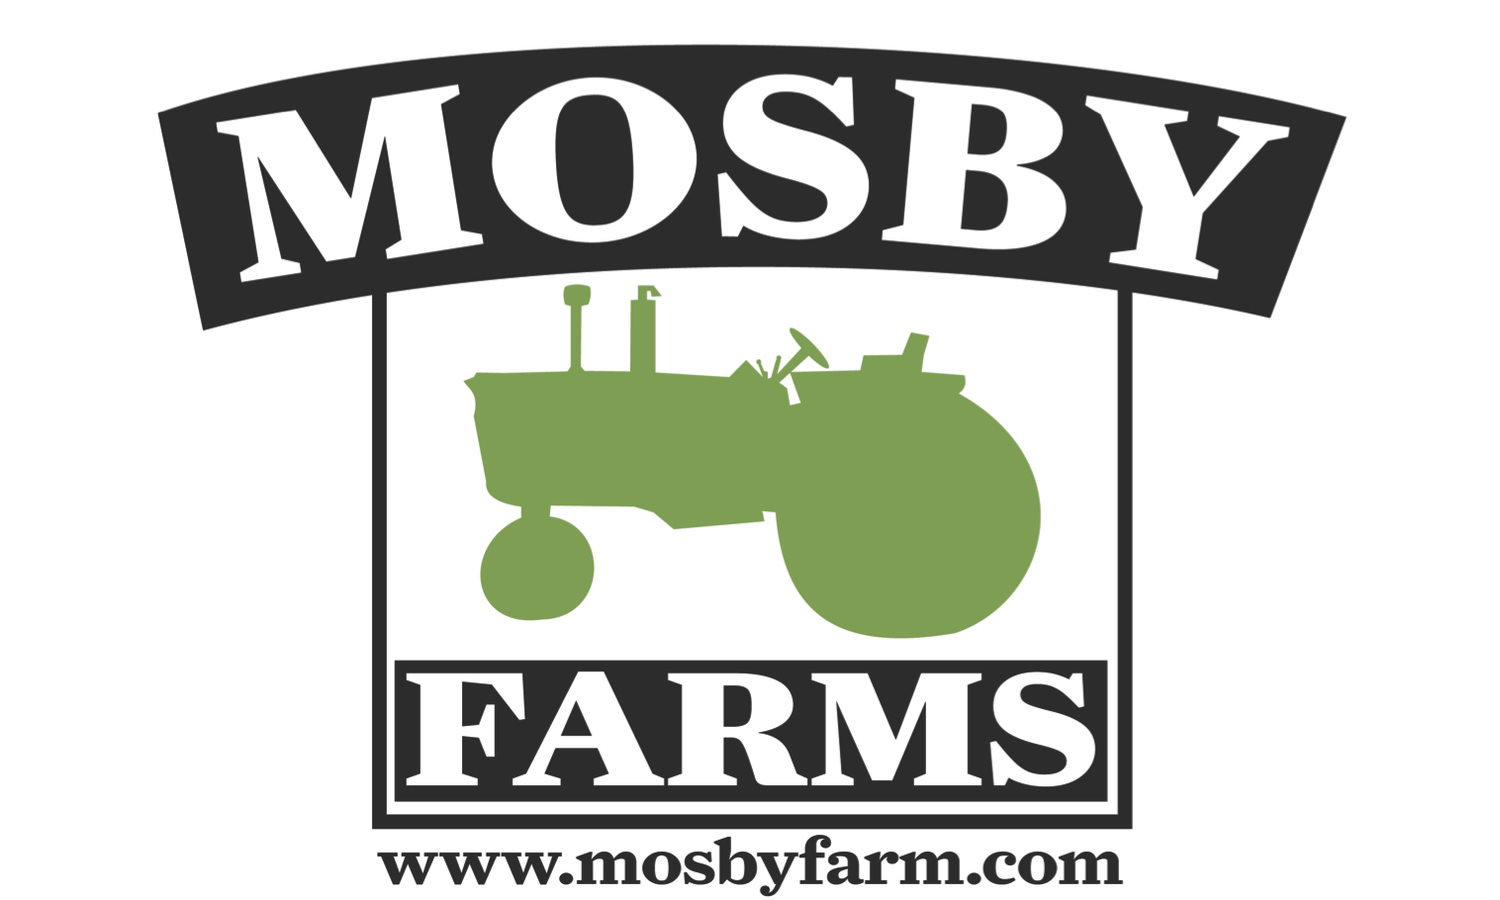 MOSBY FARMS